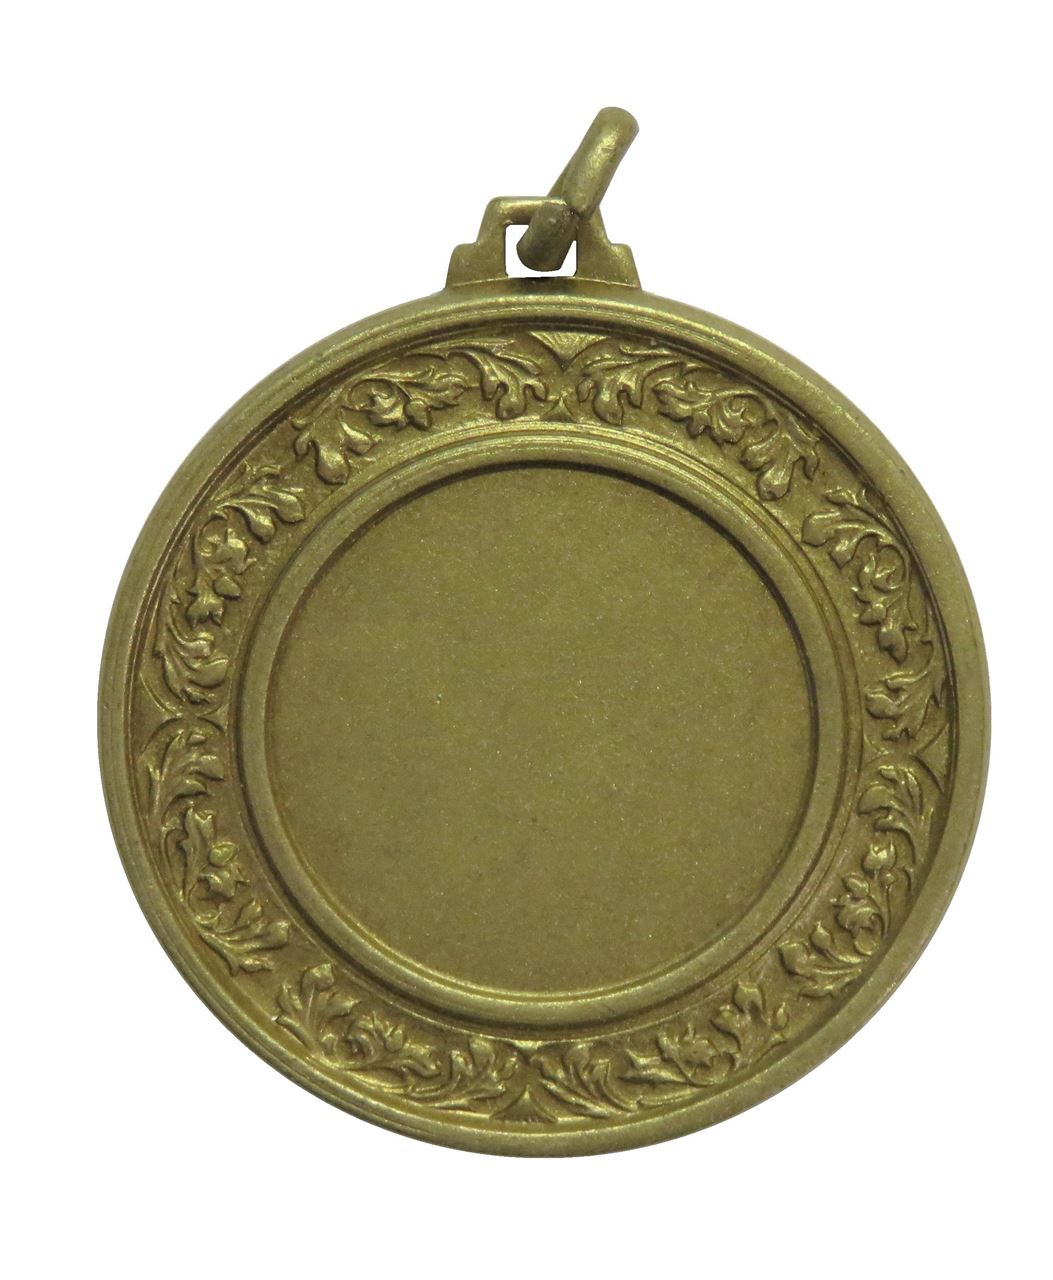 Bronze Quality Vine Medal (size: 42mm) - 5550E